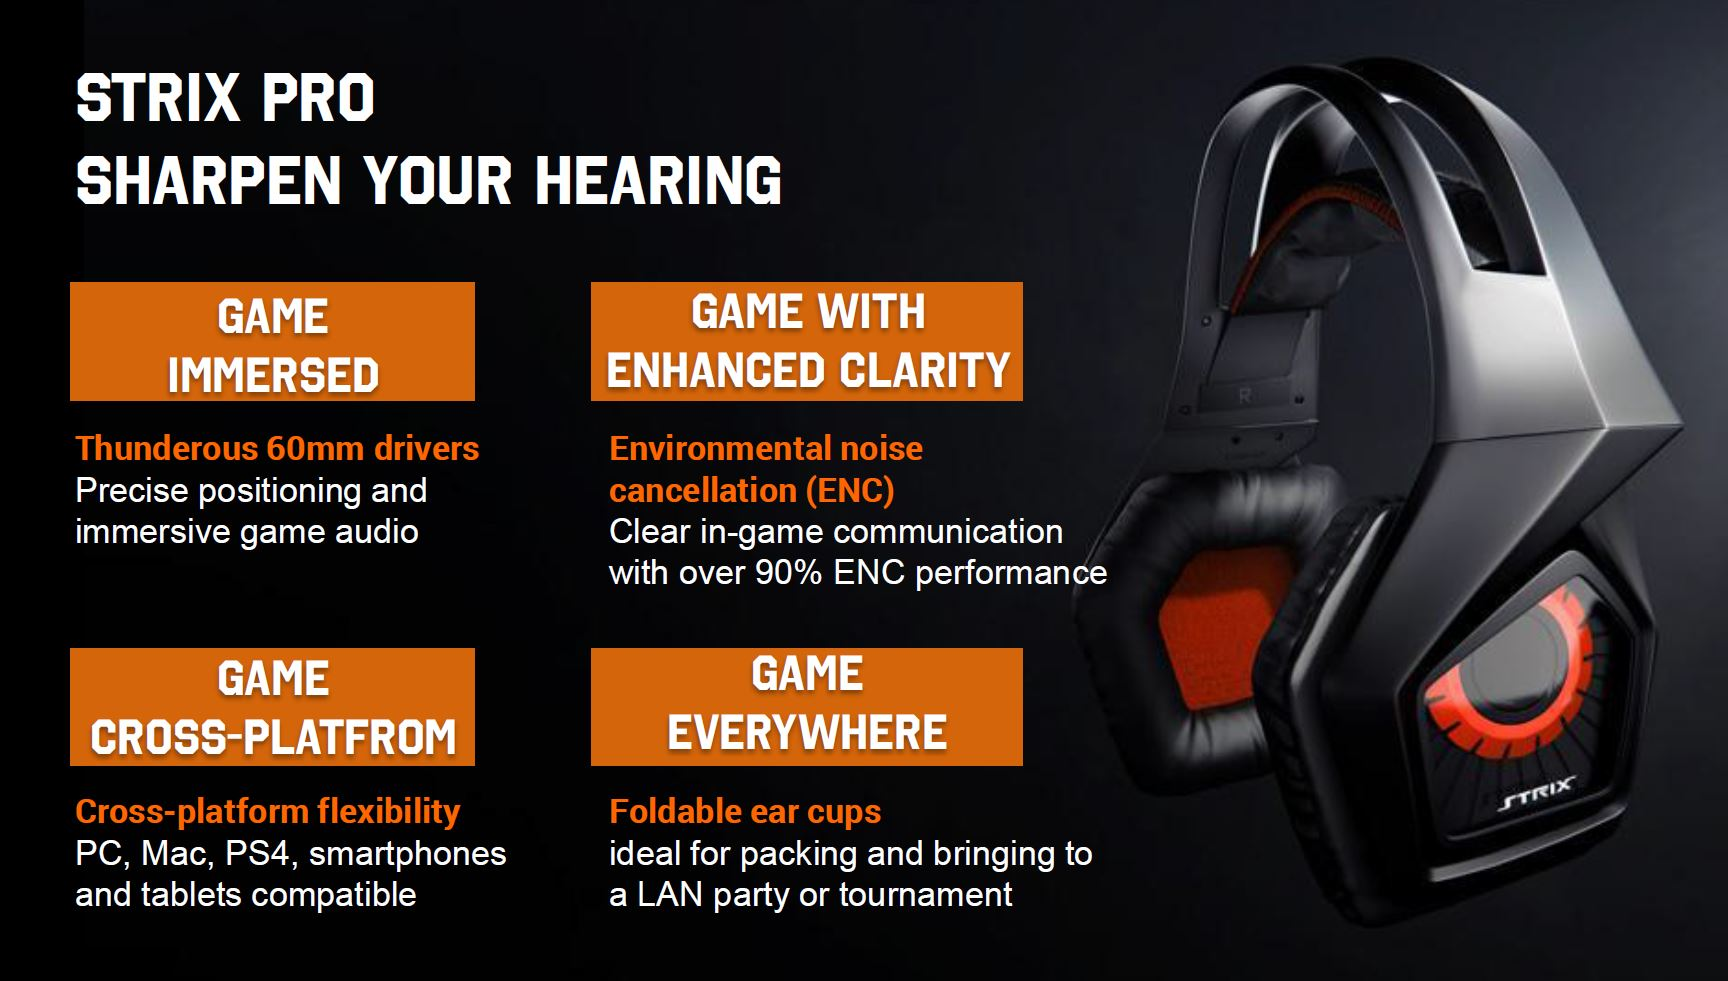 Strix-Pro-gaming-headset-info